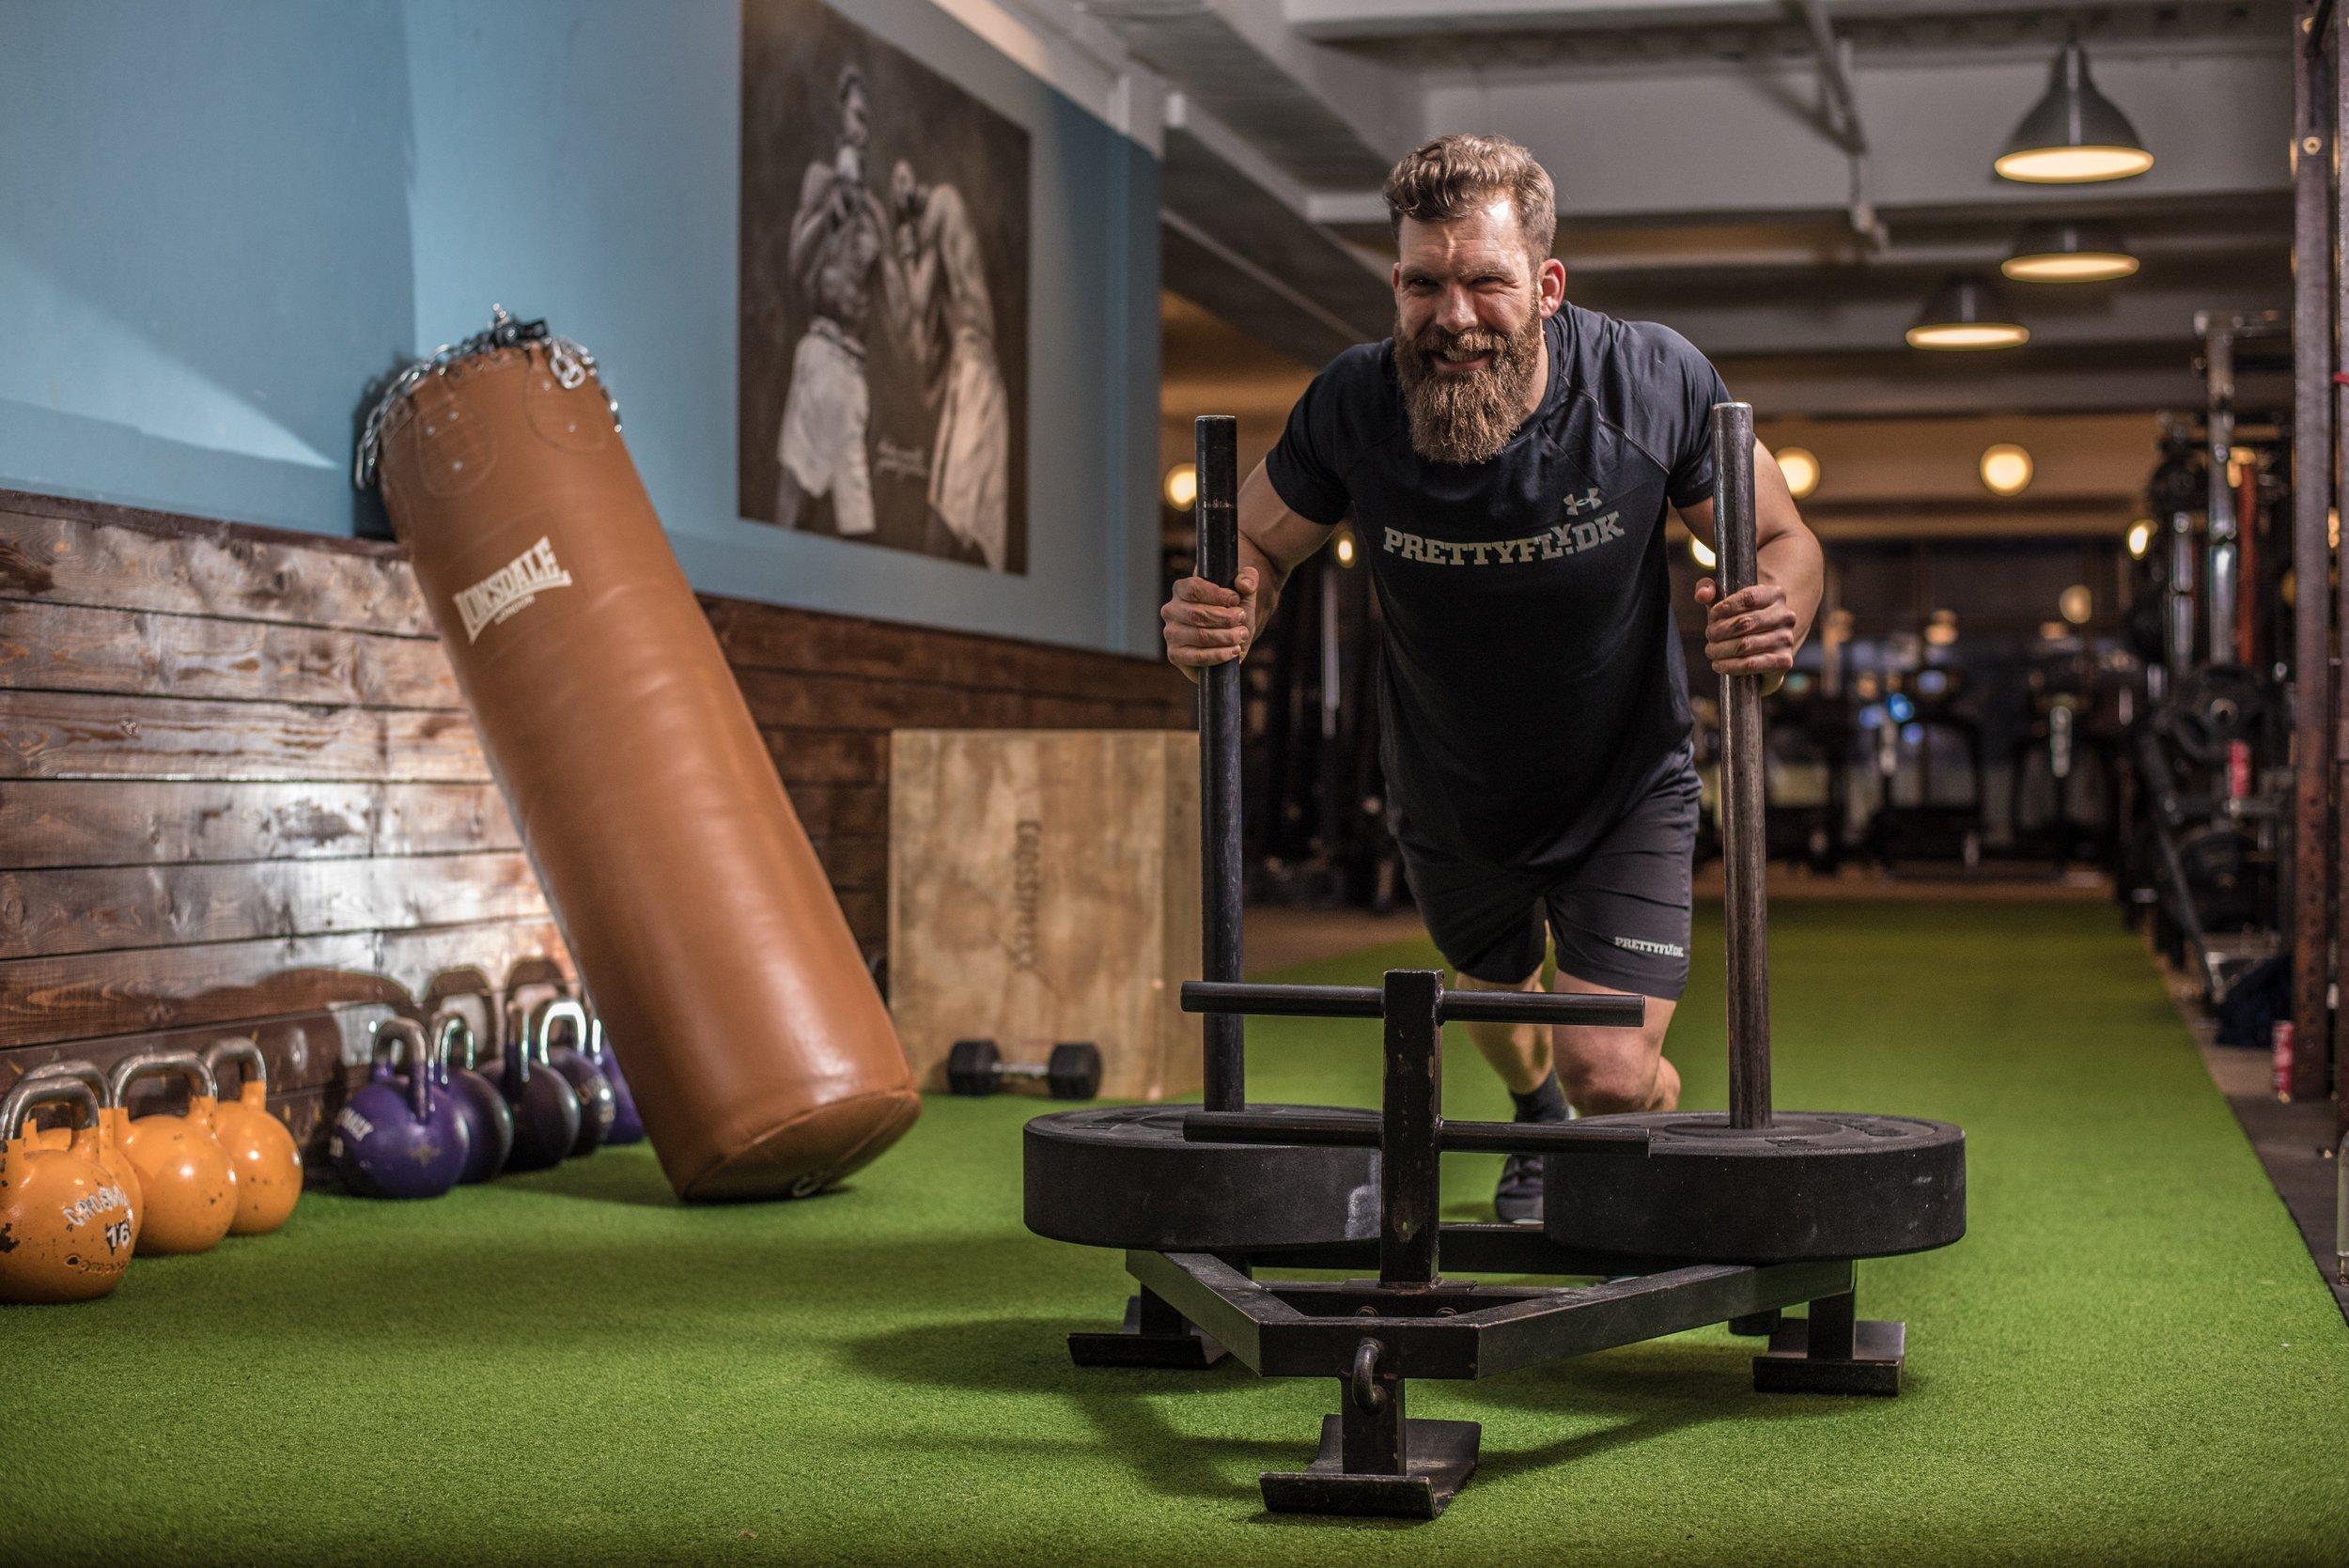 Sled pushes for beginners